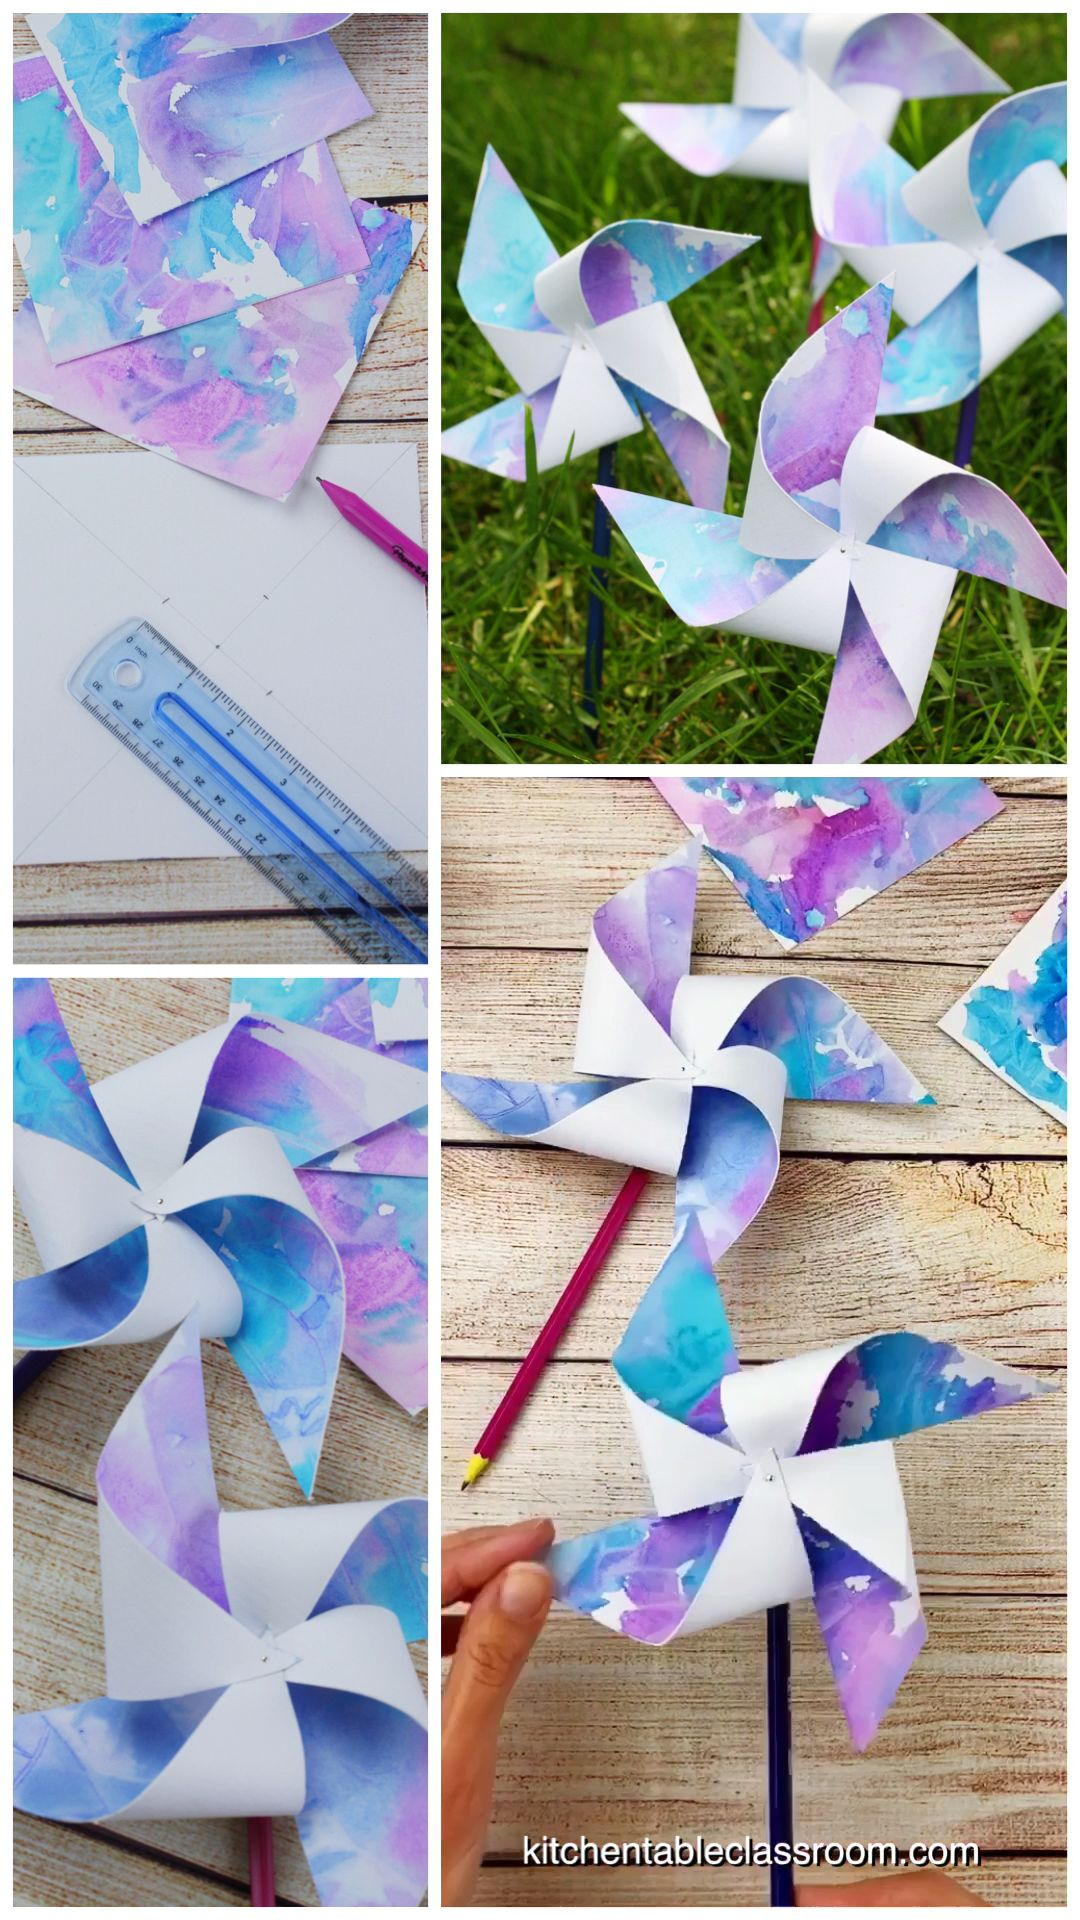 How to Make Pinwheels-with Free Printable Template - The Kitchen Table Classroom